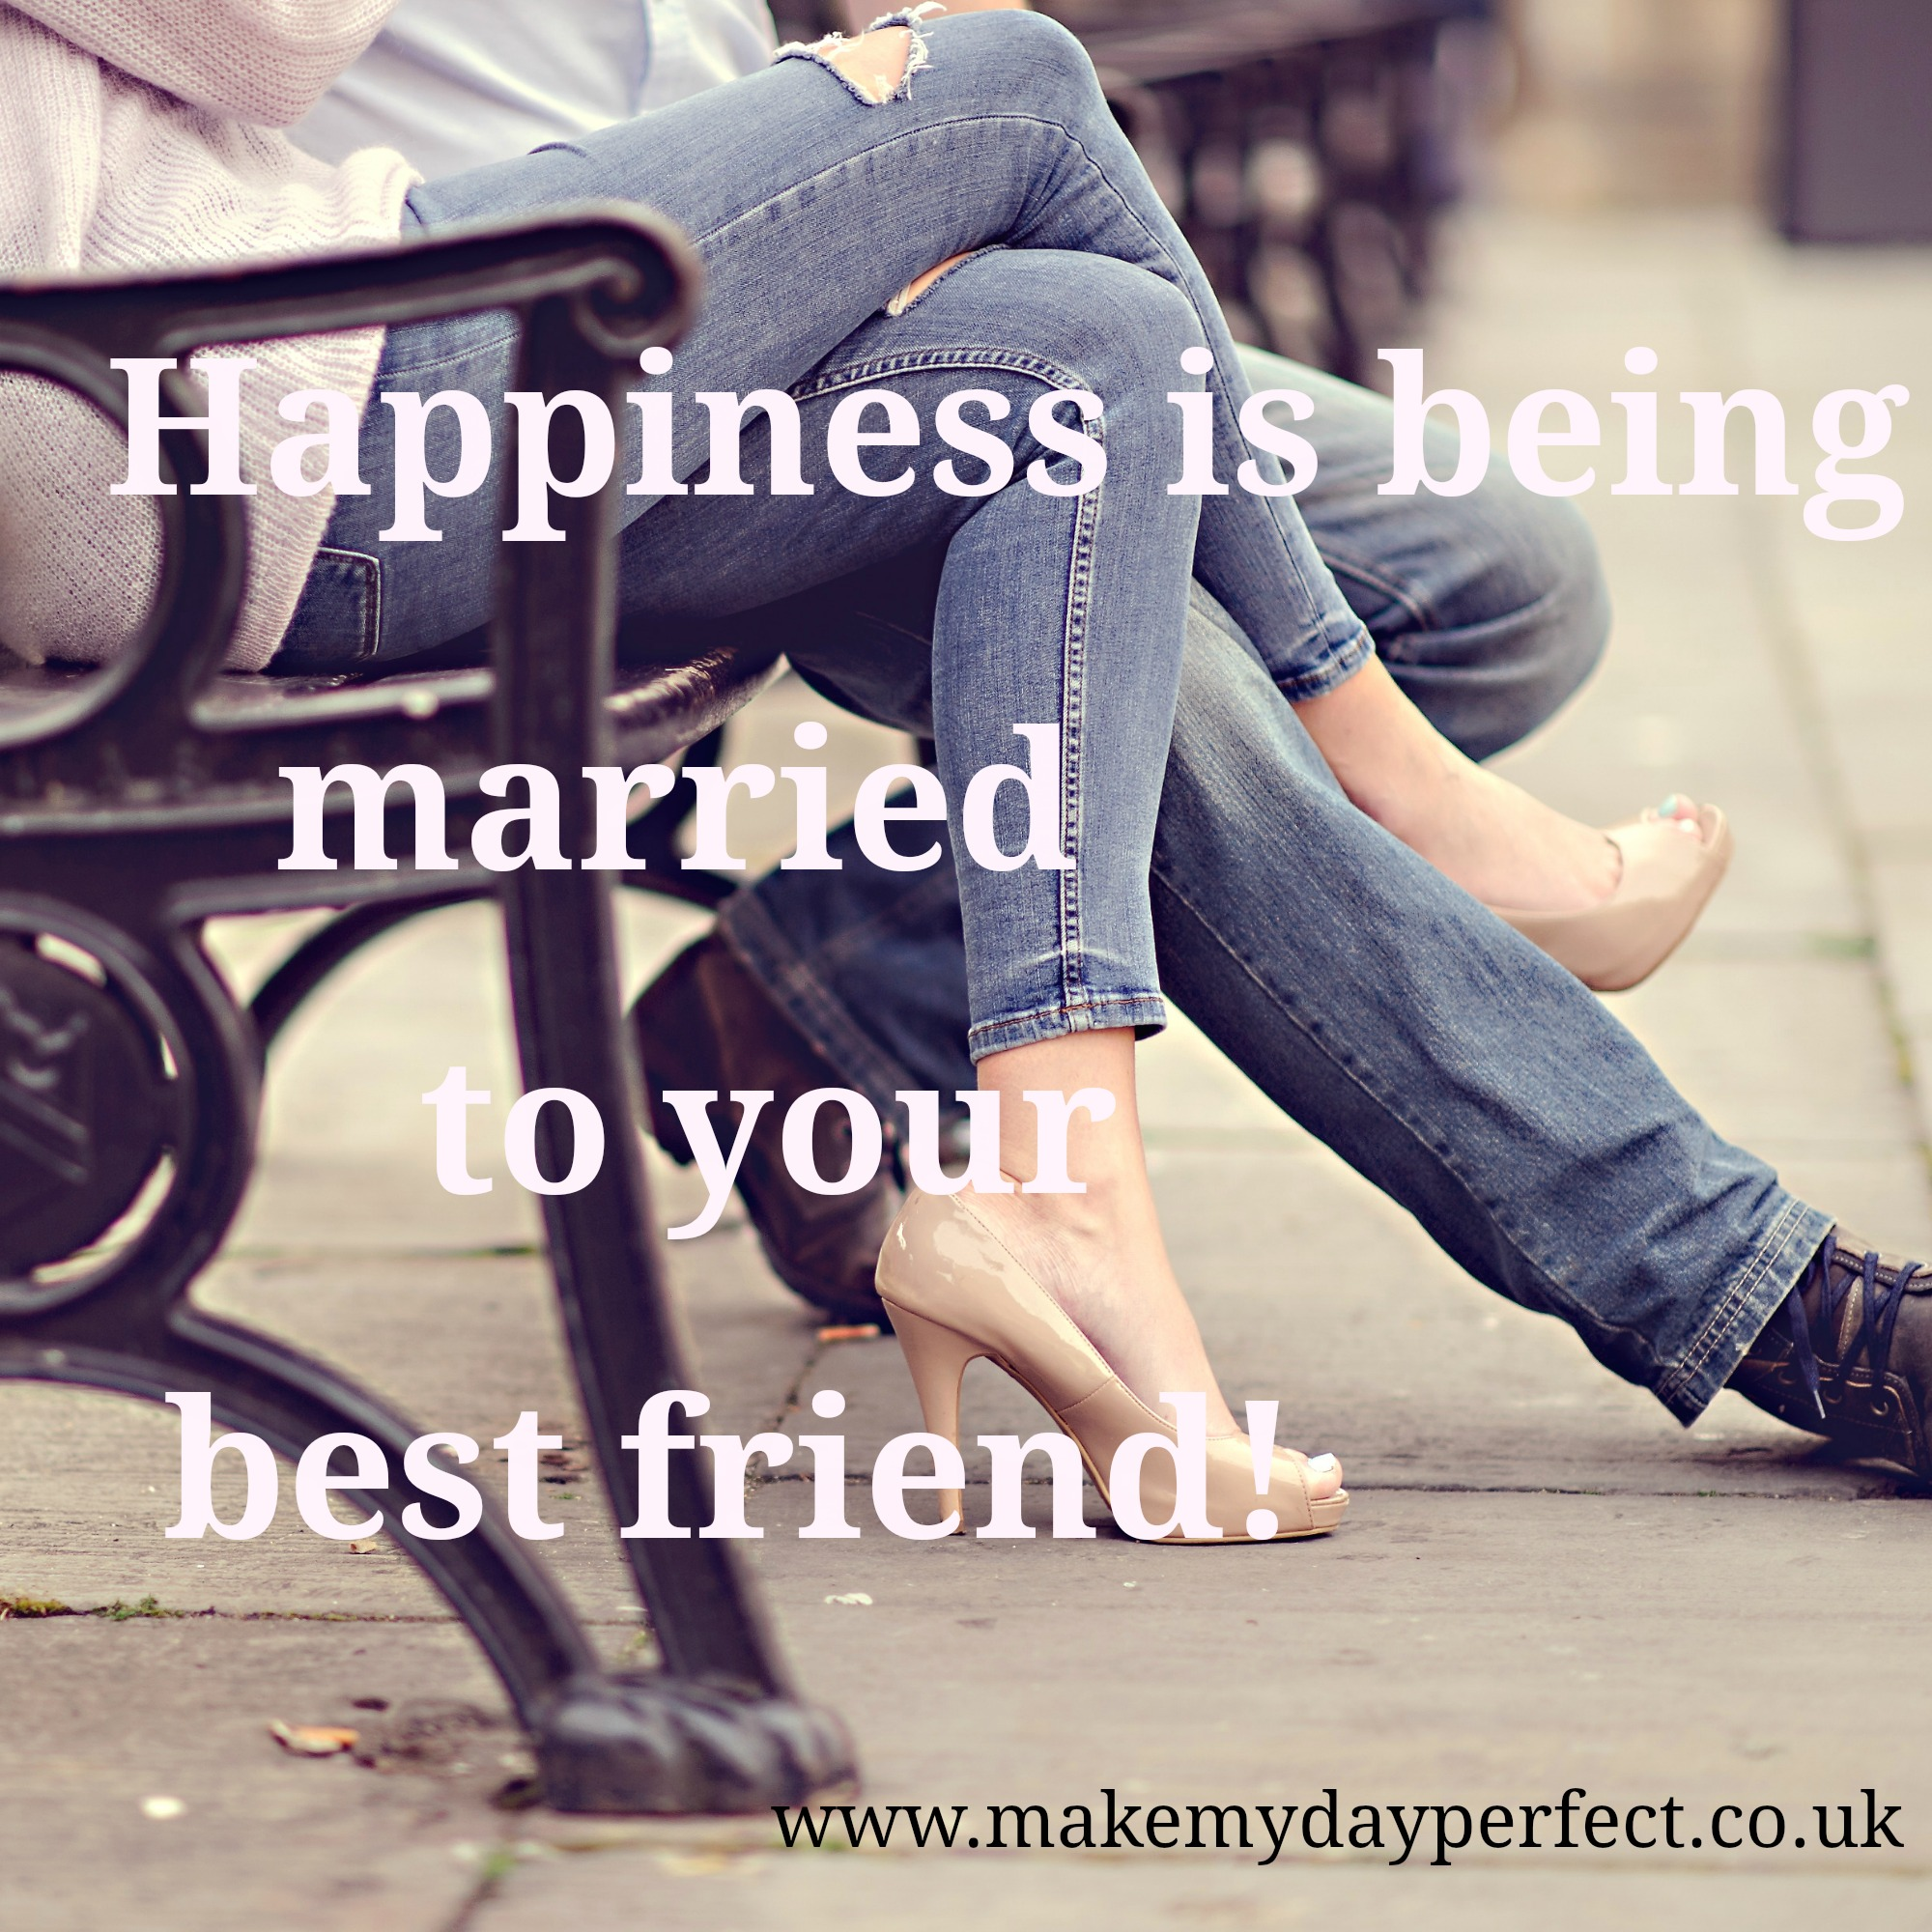 Top 5 Marriage Quotes That Will Make You Smile Make My Day Perfect